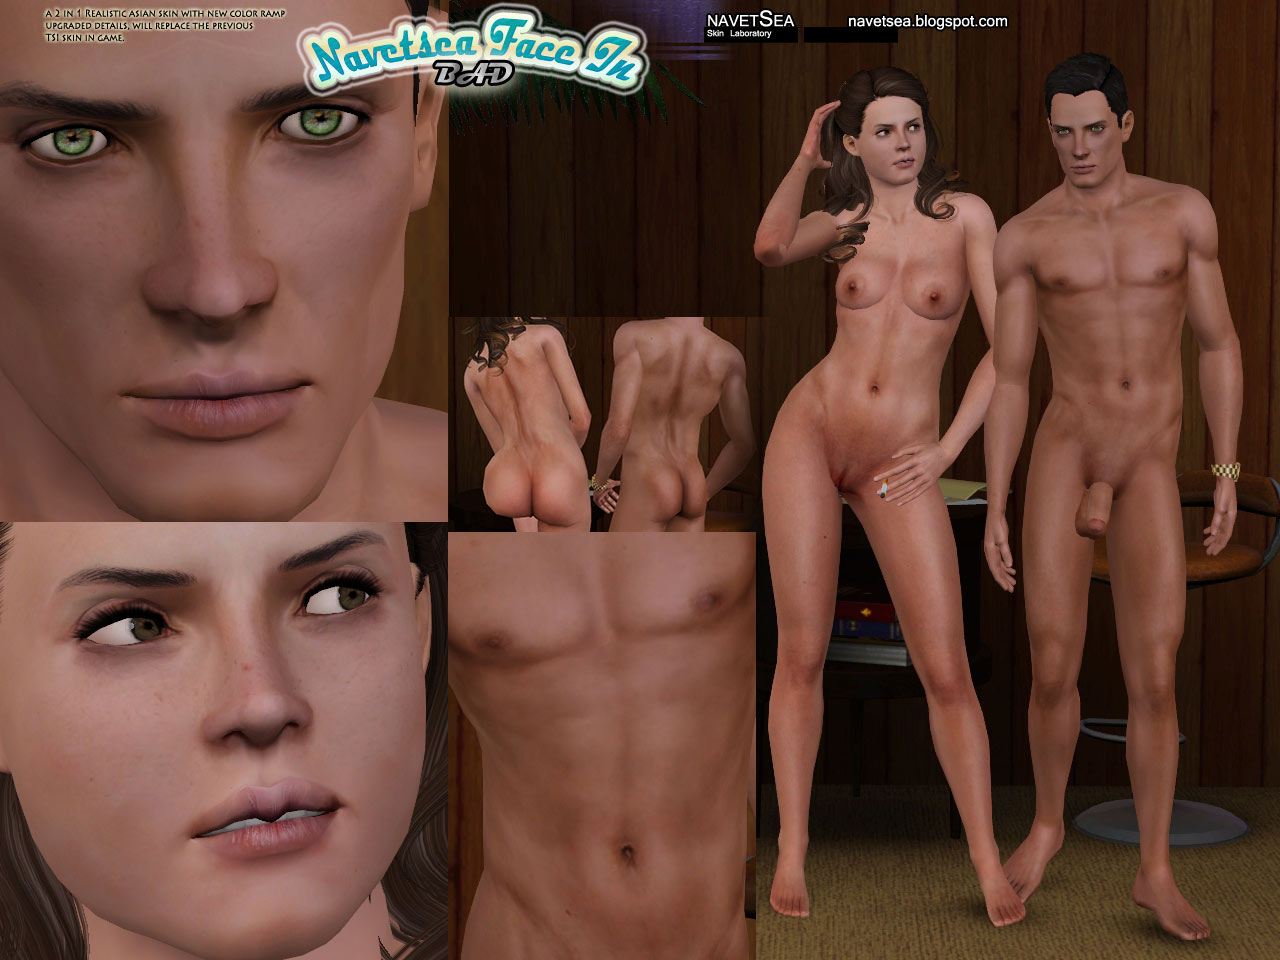 The sims 2 censor nude patch sexual photo